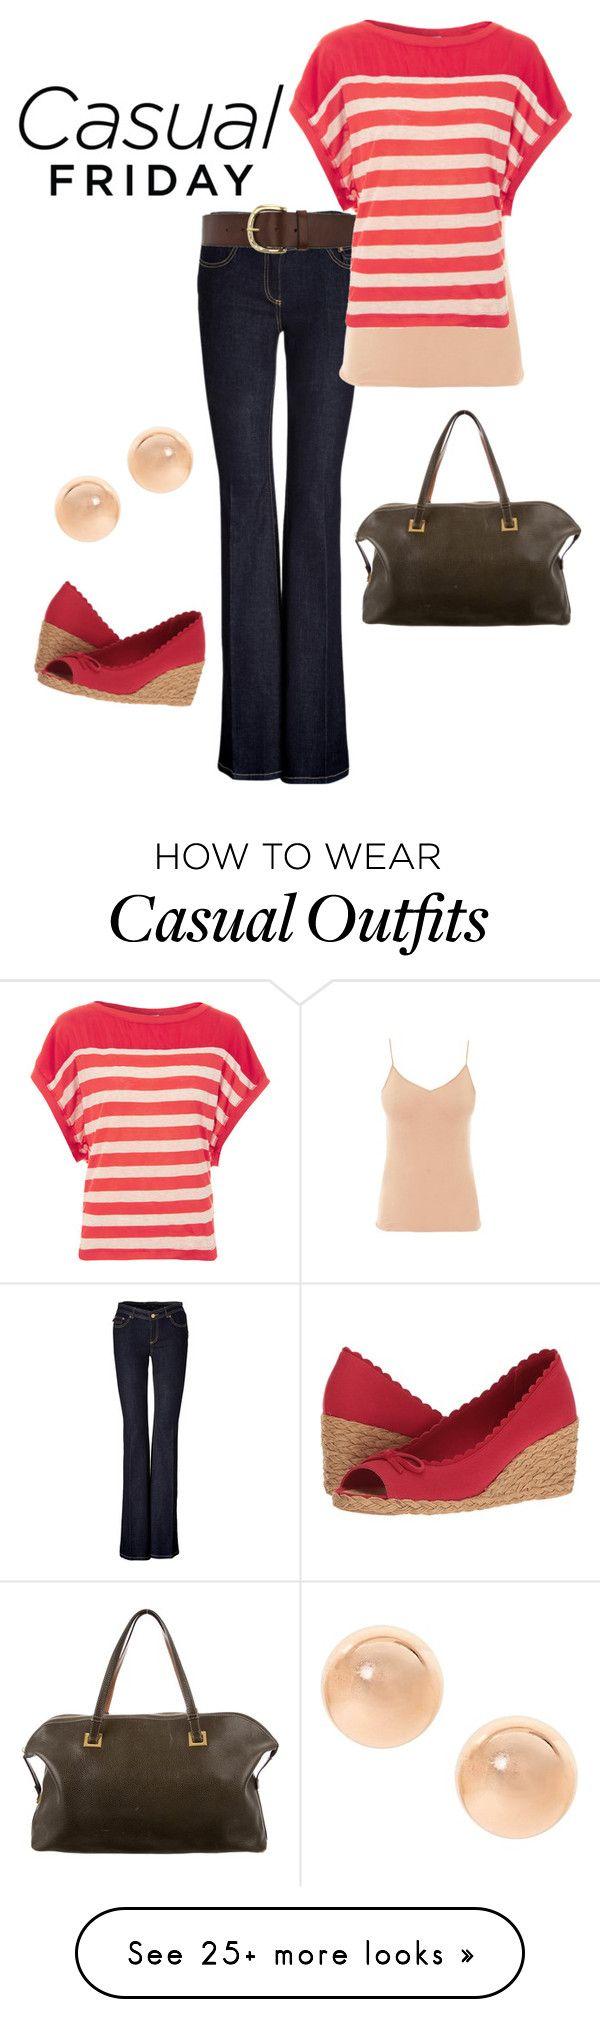 """Casual Friday"" by jennashrmn on Polyvore featuring Rachel Zoe, Warehouse, Hanro, Splendid, Lauren Ralph Lauren and Kate Spade"